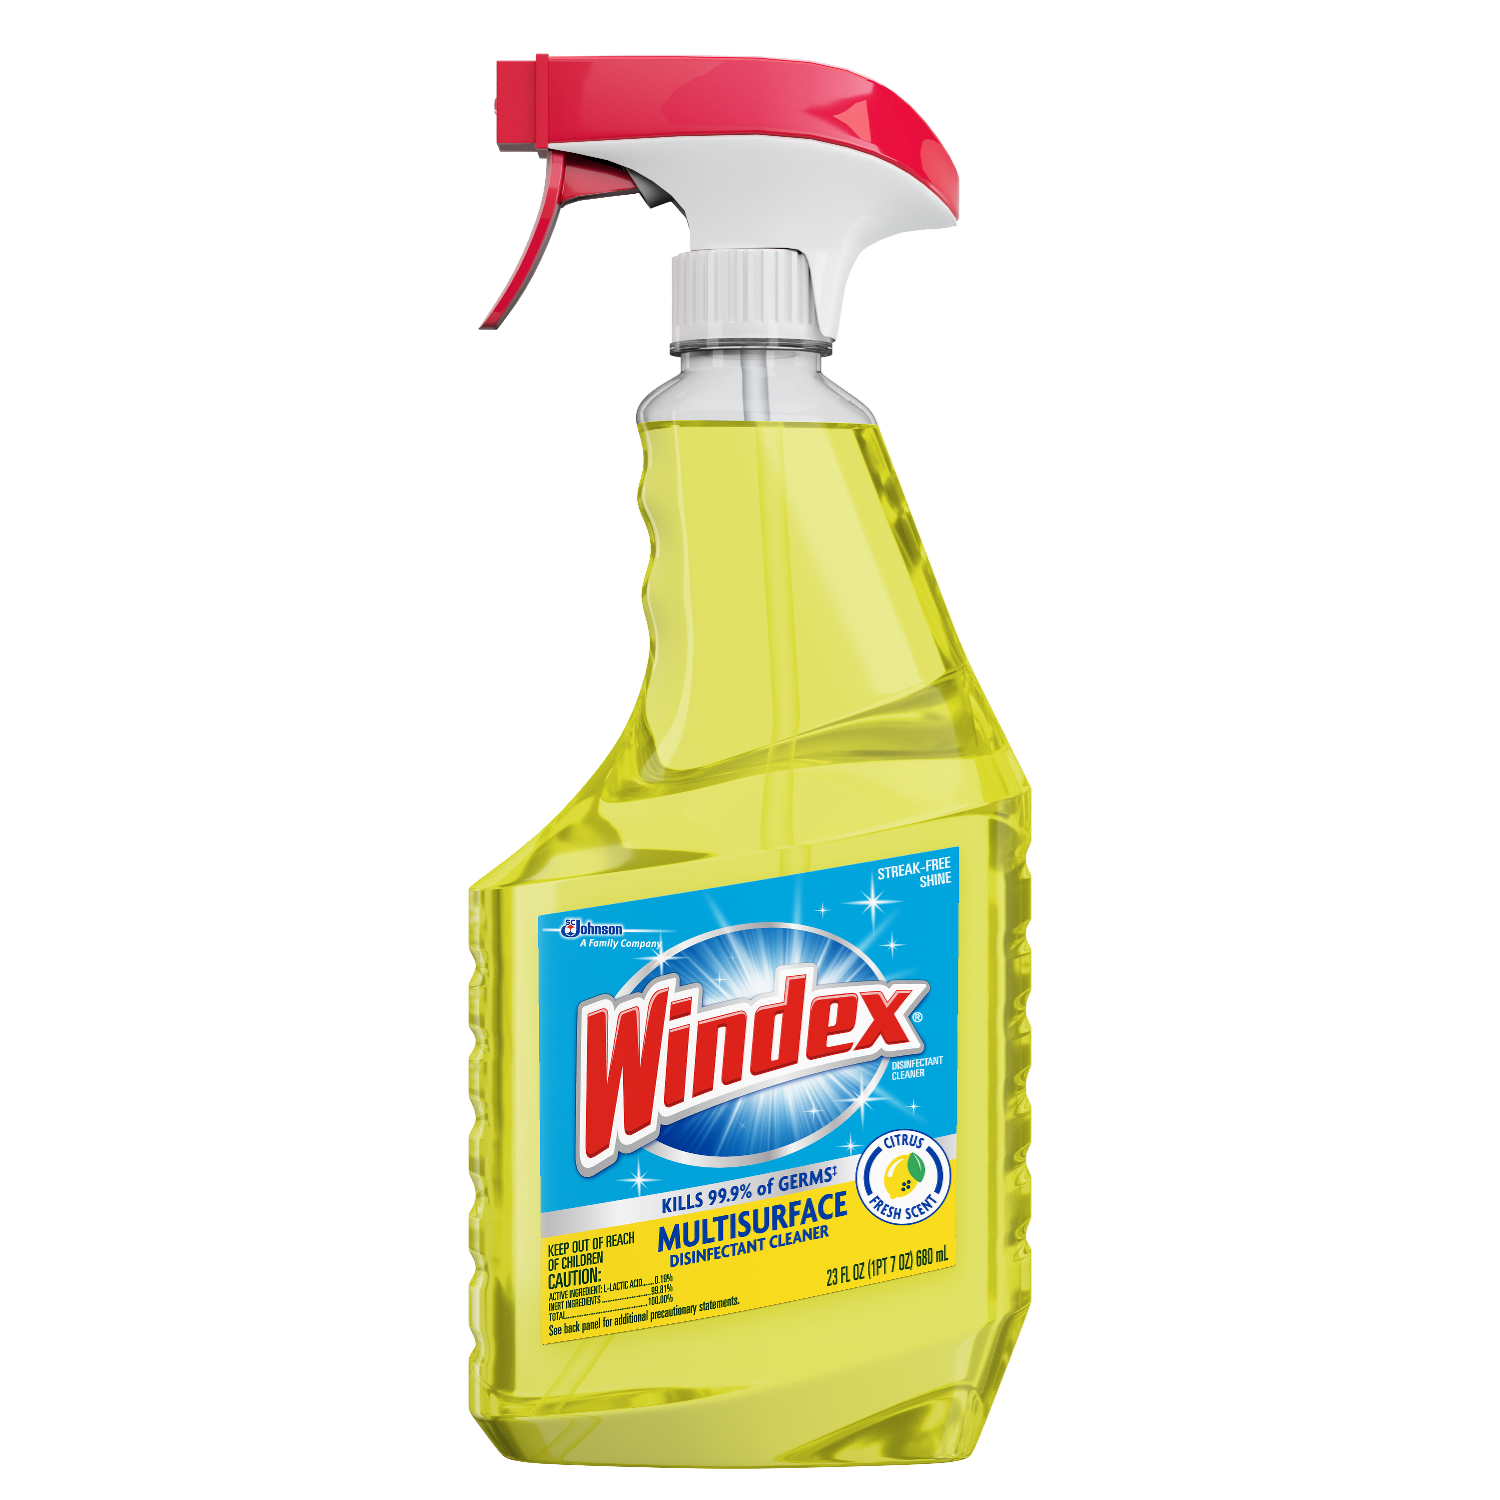 windex-disinfectant-cleaner-multi-surface-23oz-trigger-679594